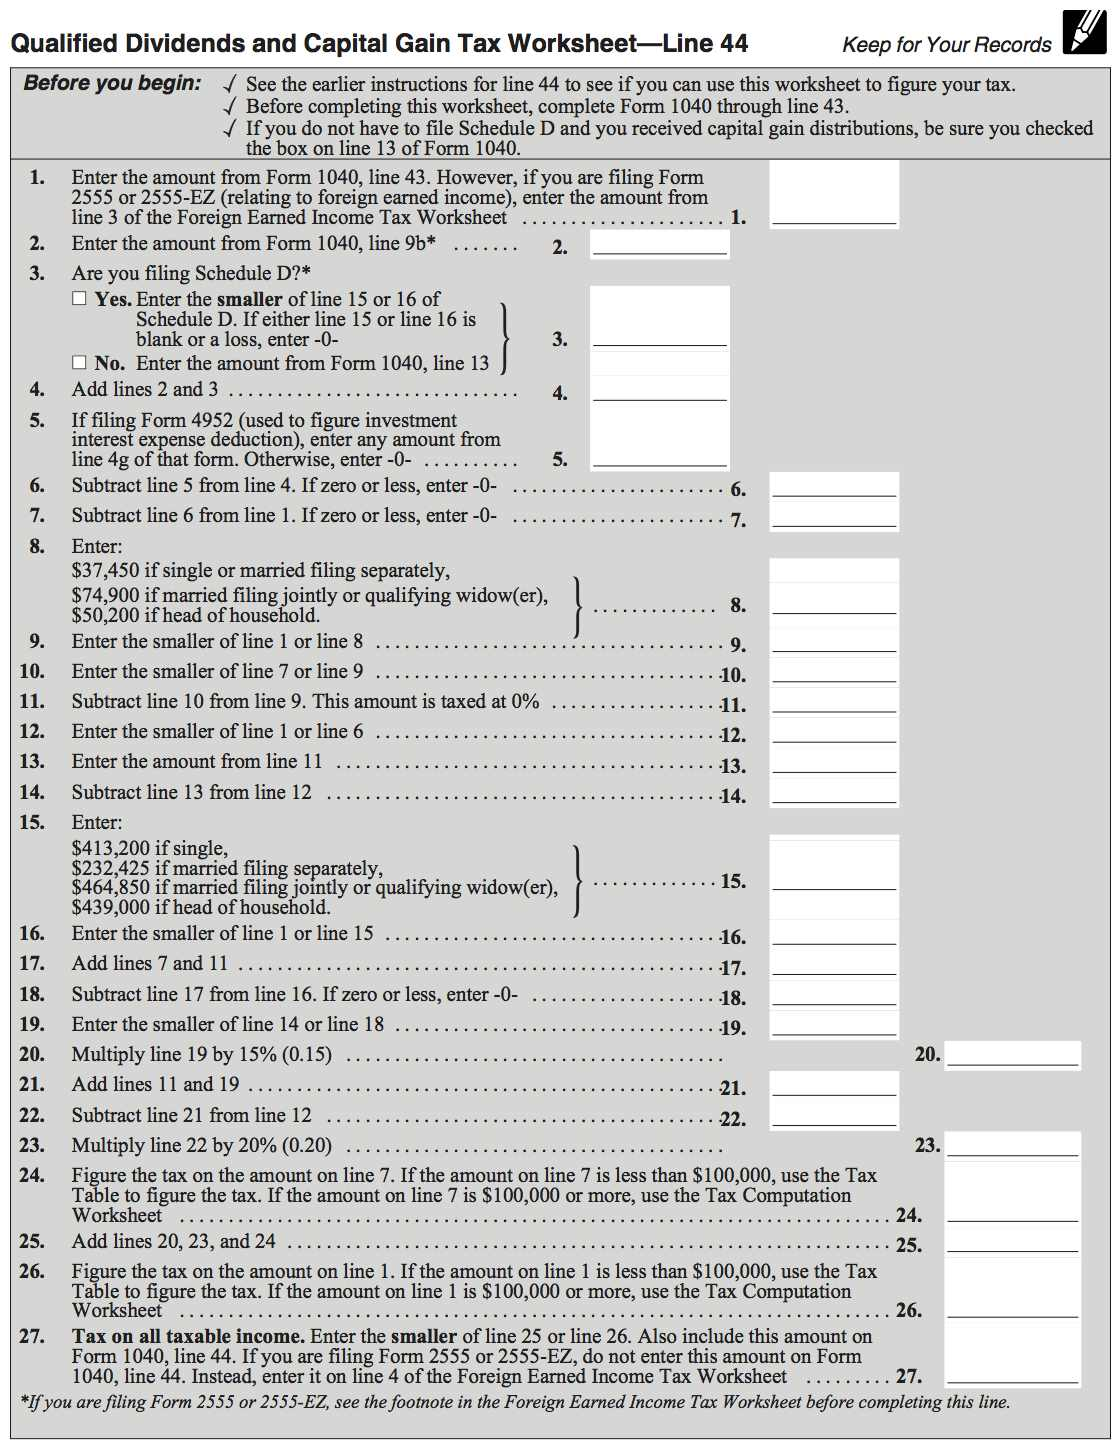 Qualified Dividends And Capital Gains Tax Worksheet